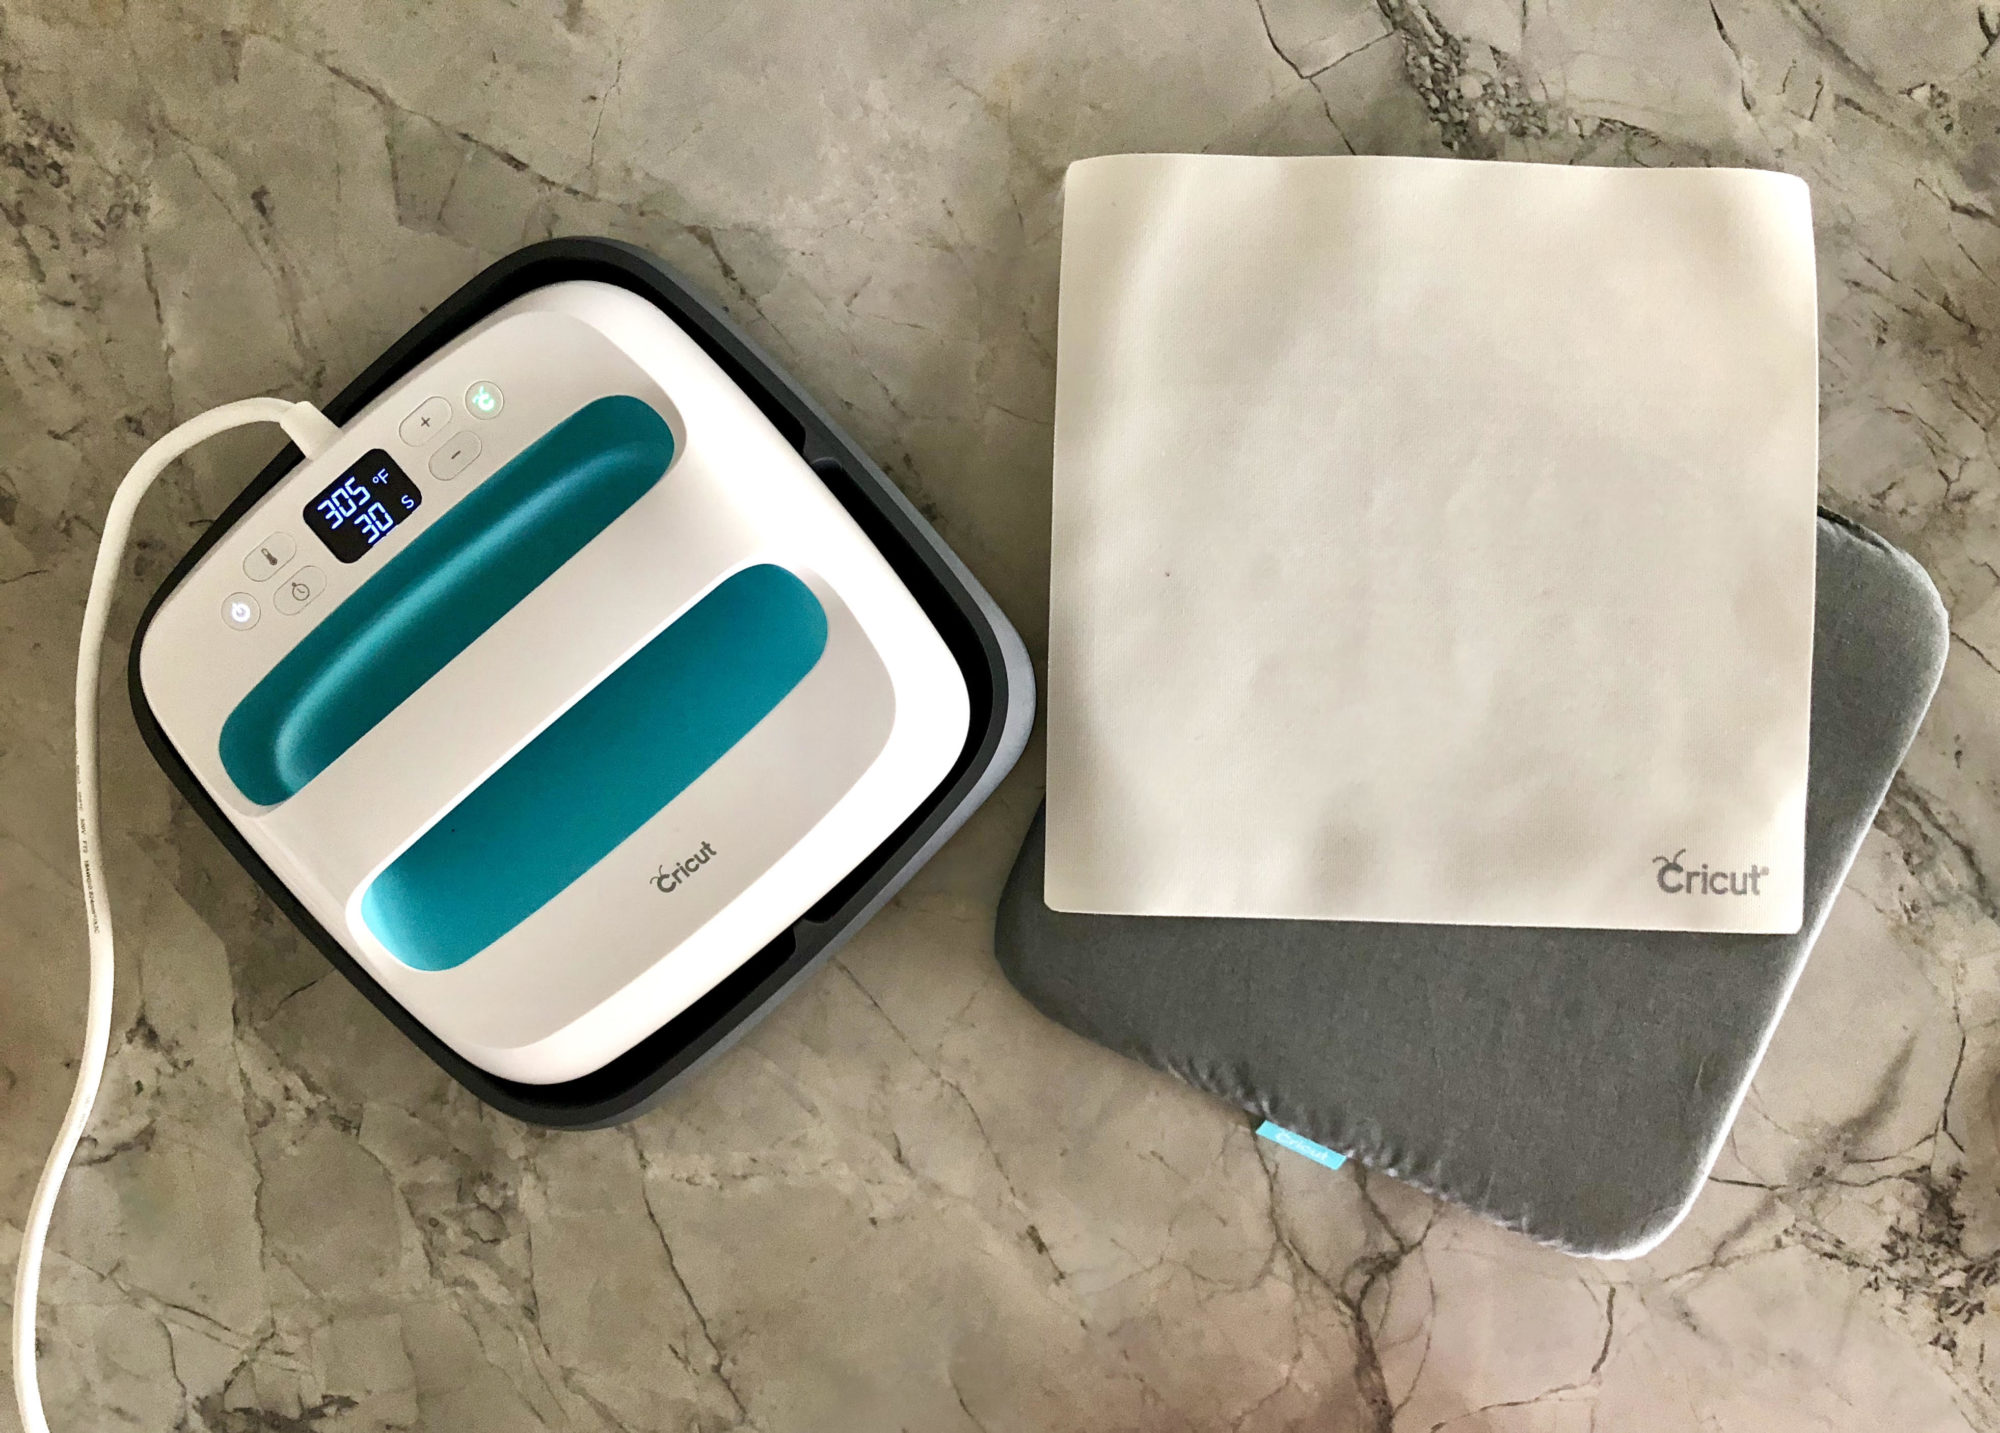 Cricut EasyPress with EasyPress Mat